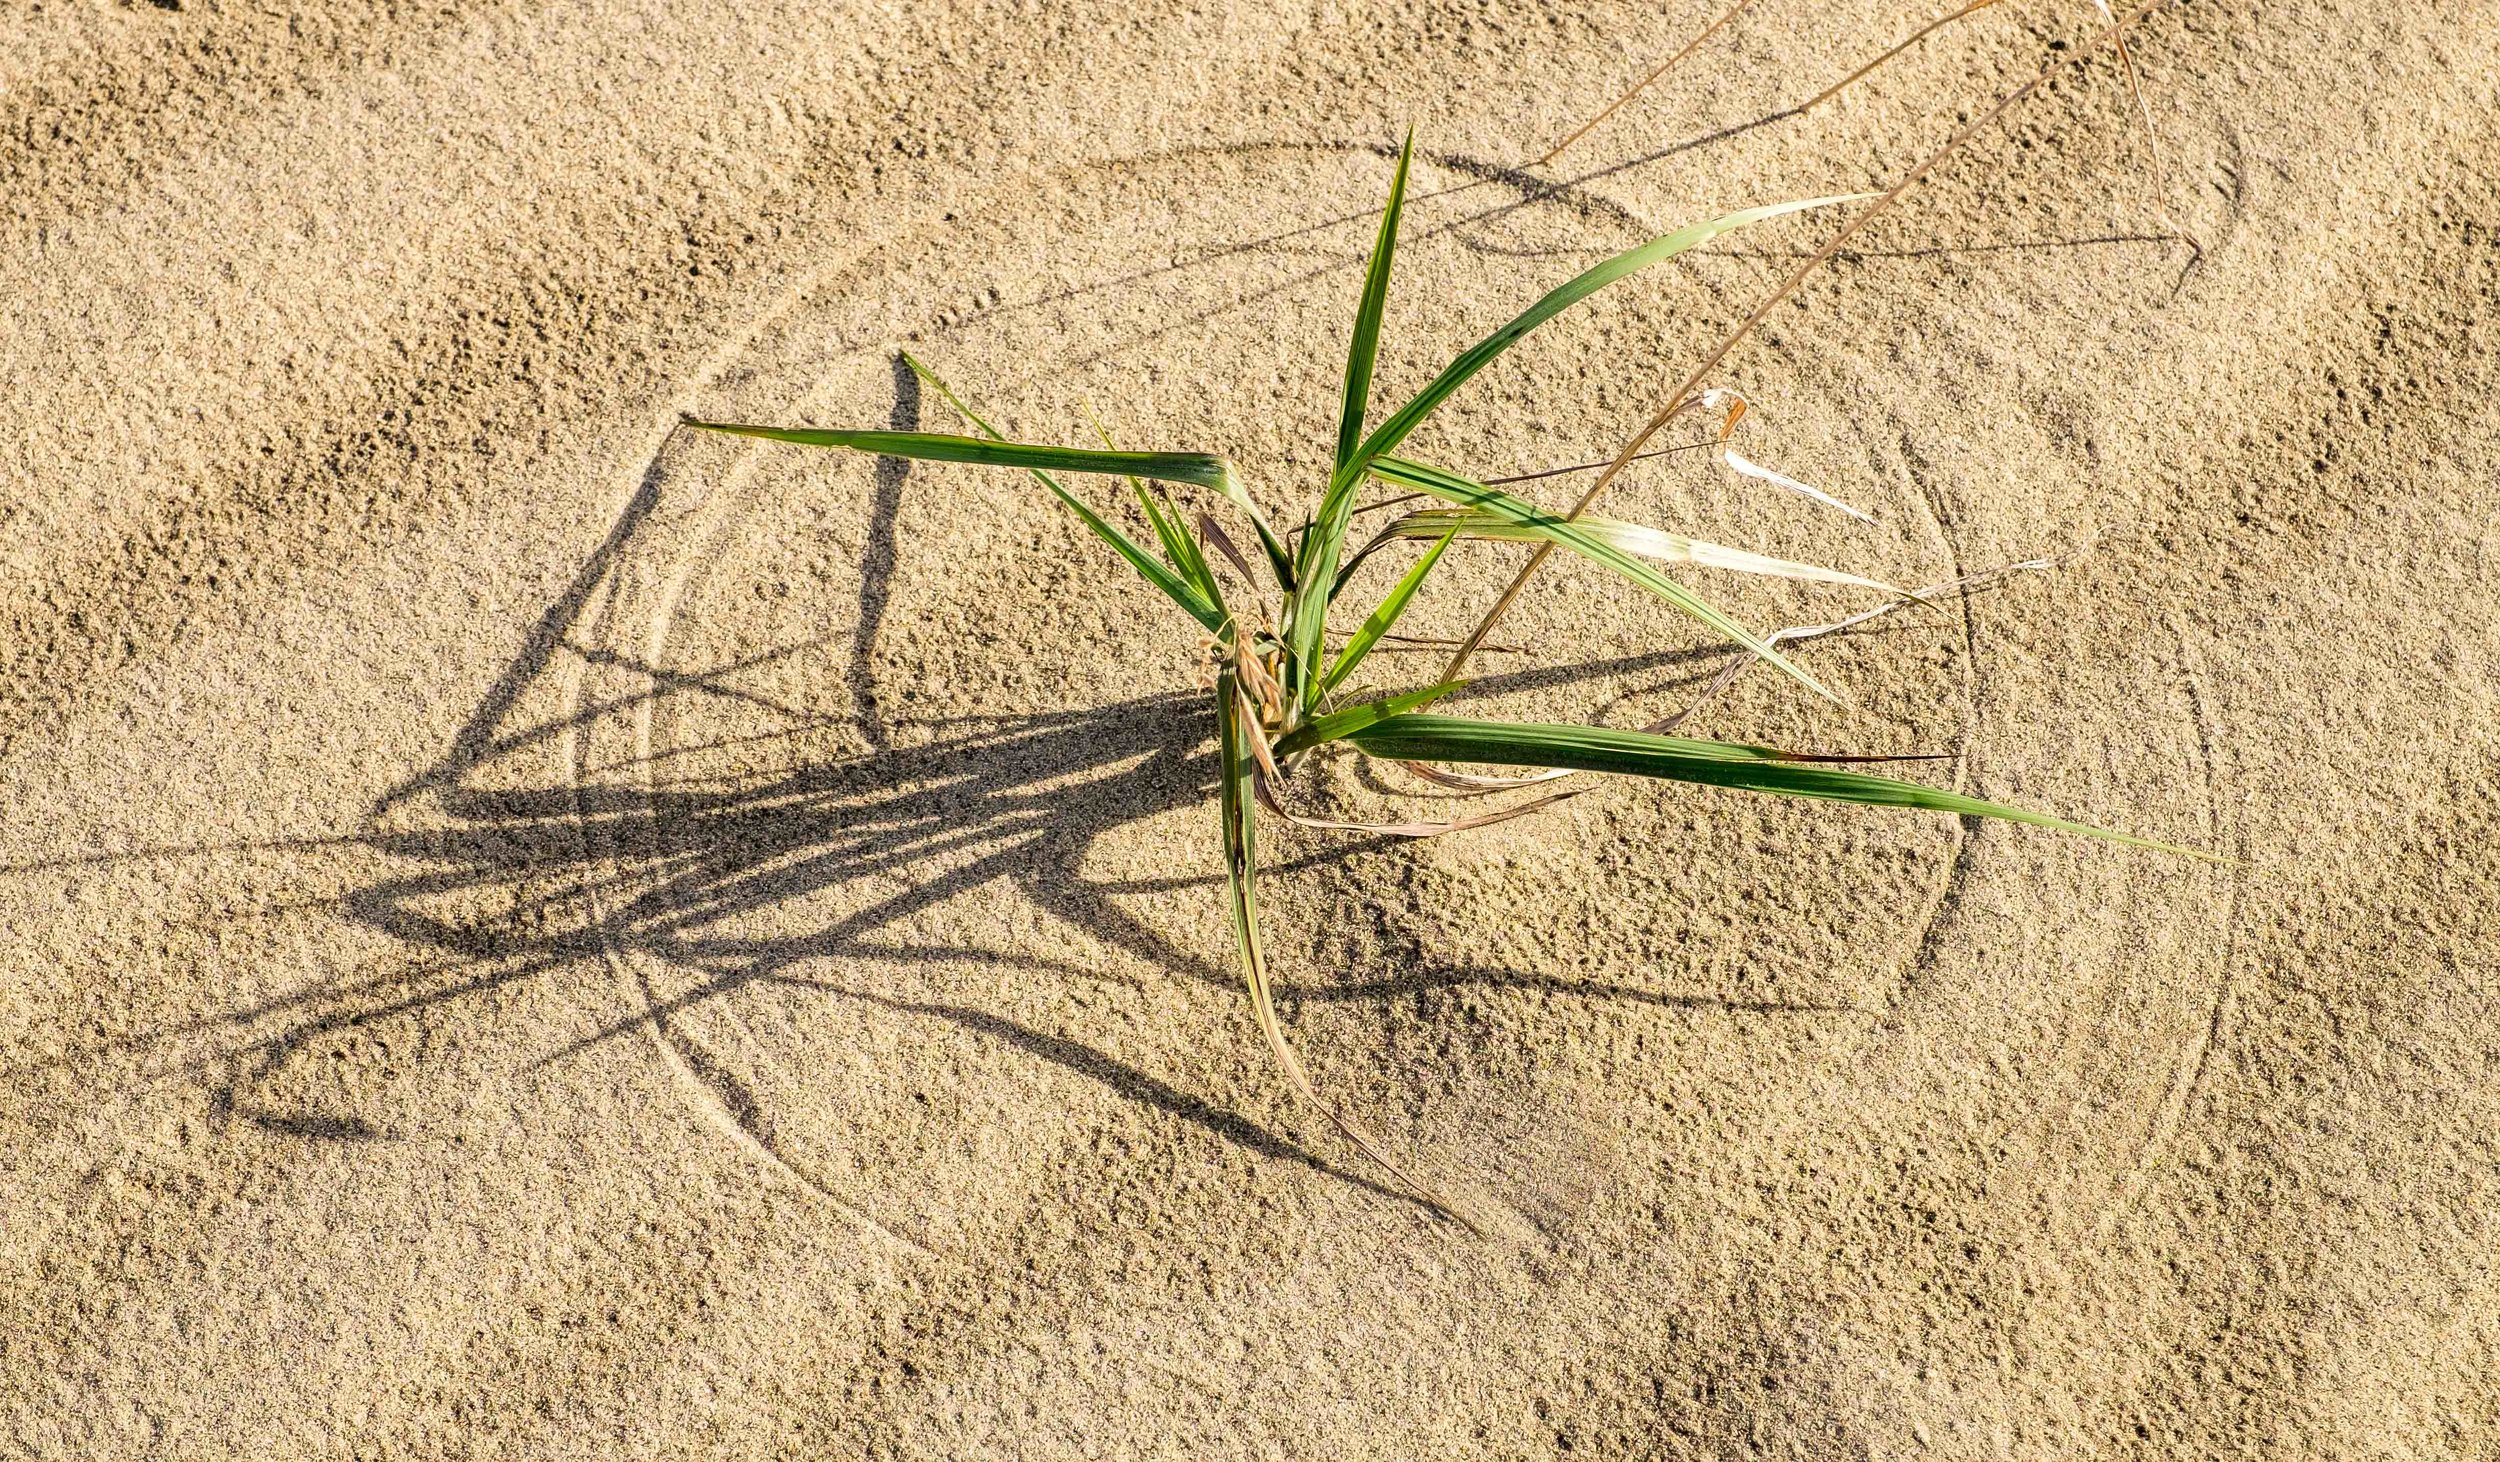 Wind blows the leaves and forms these circles around the desert plants.